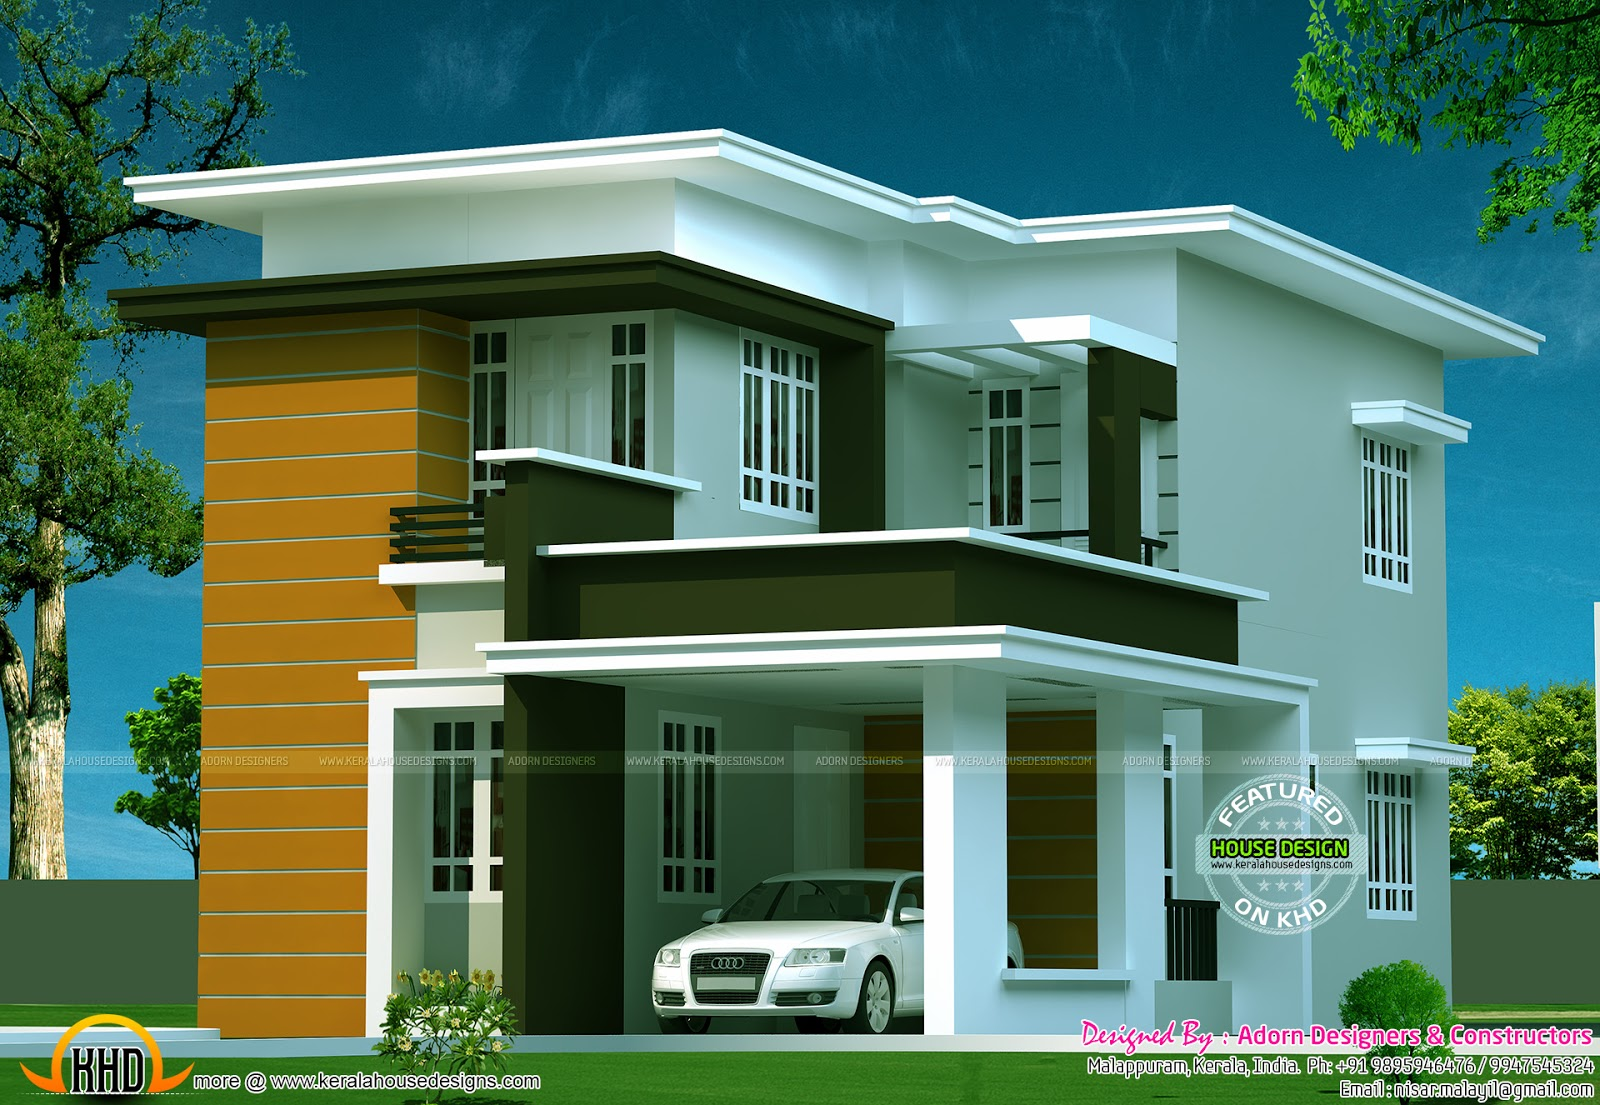 New flat roof house kerala home design and floor plans for Blue print homes